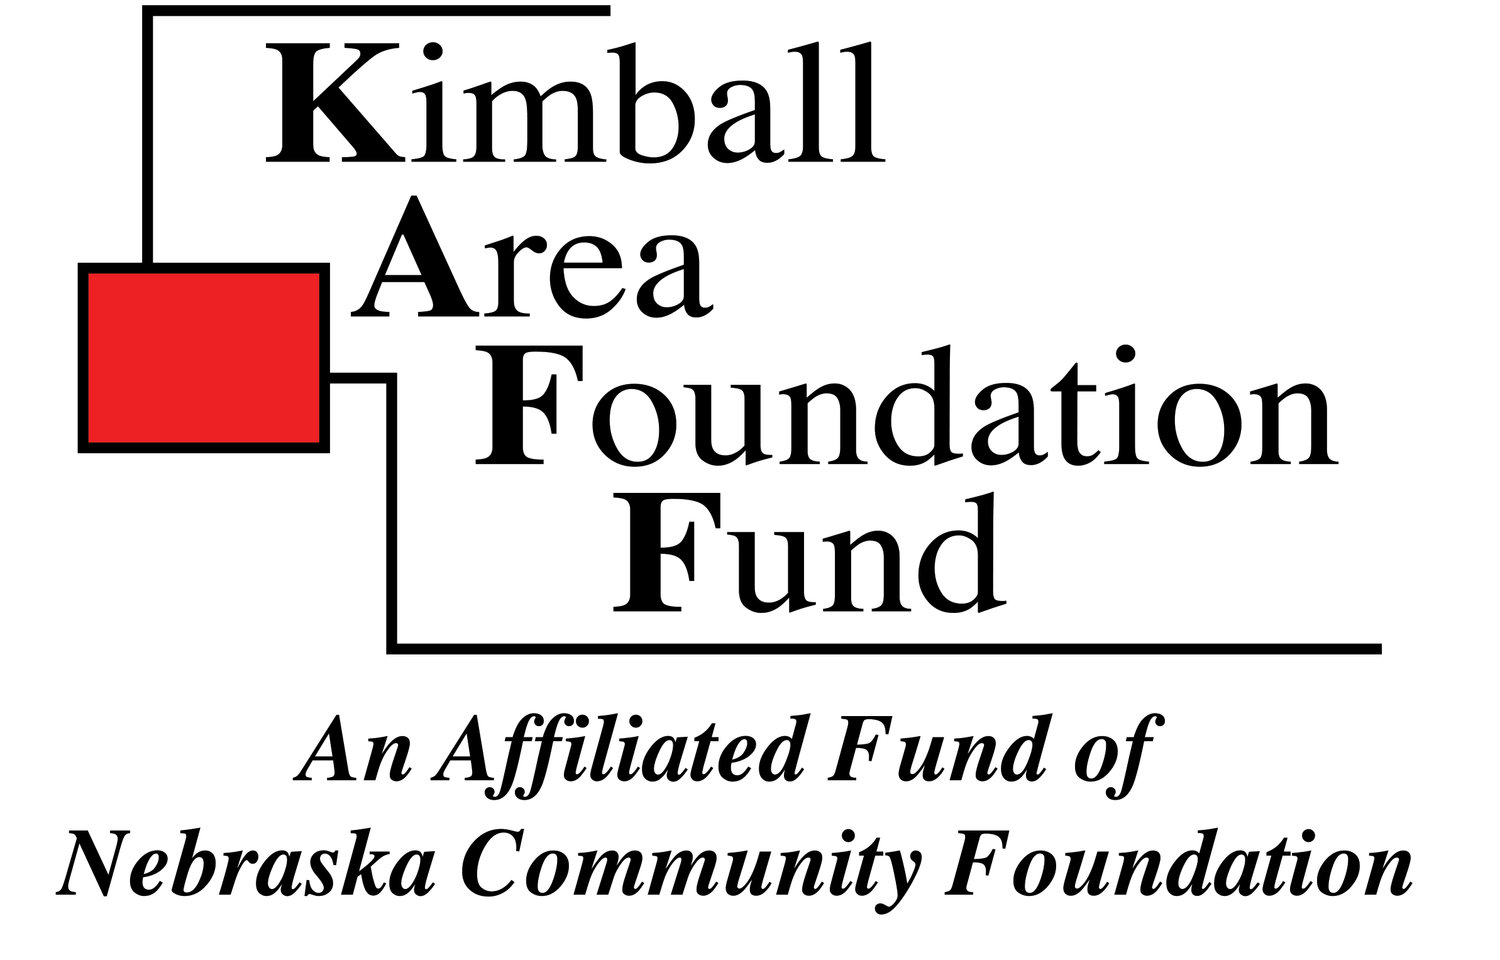 Kimball Area Foundation Fund